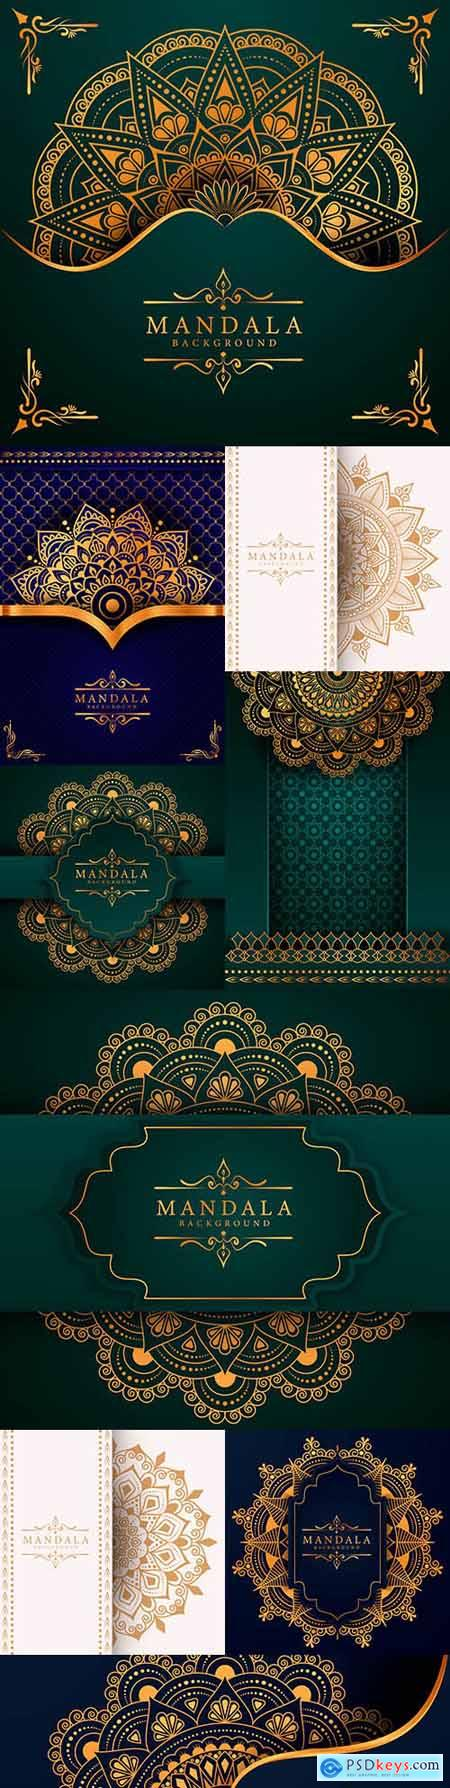 Mandala creative luxury blue and green design background 5